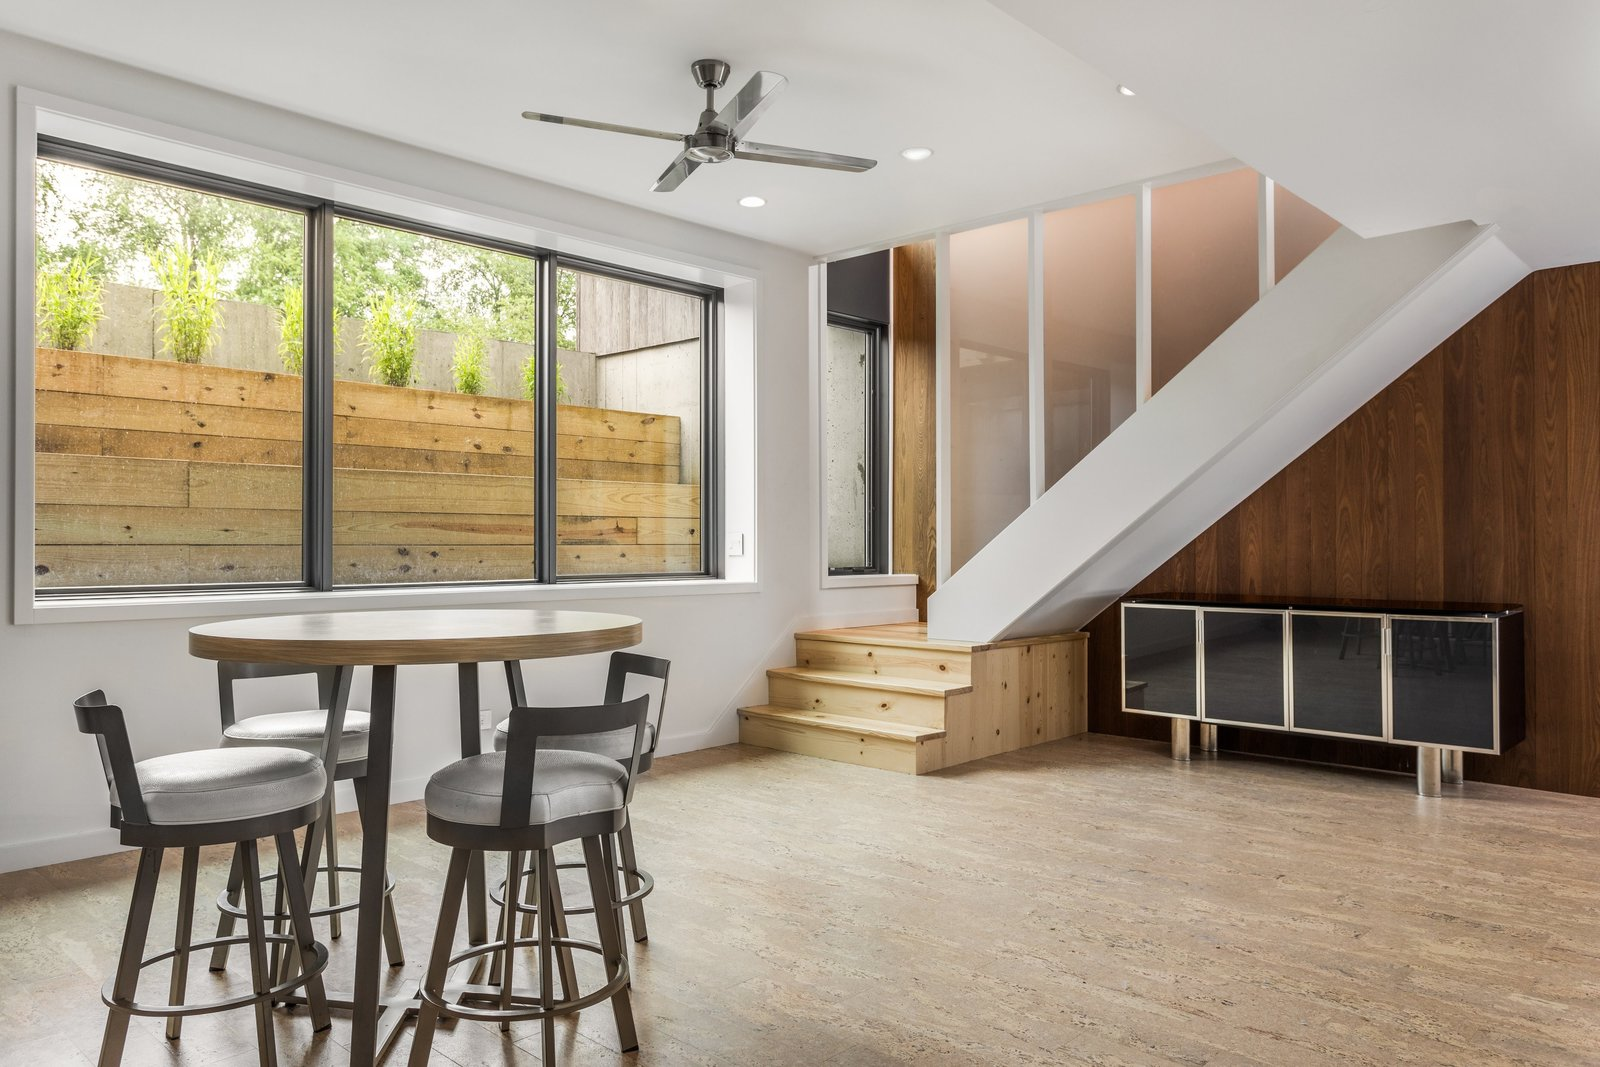 Cork Floor, Coffee Tables, Stools, Ceiling Lighting, Chair, Staircase, Wood Tread, and Metal Railing The basement was designed to enjoy natural light.   Copperwood by Kevin Swan